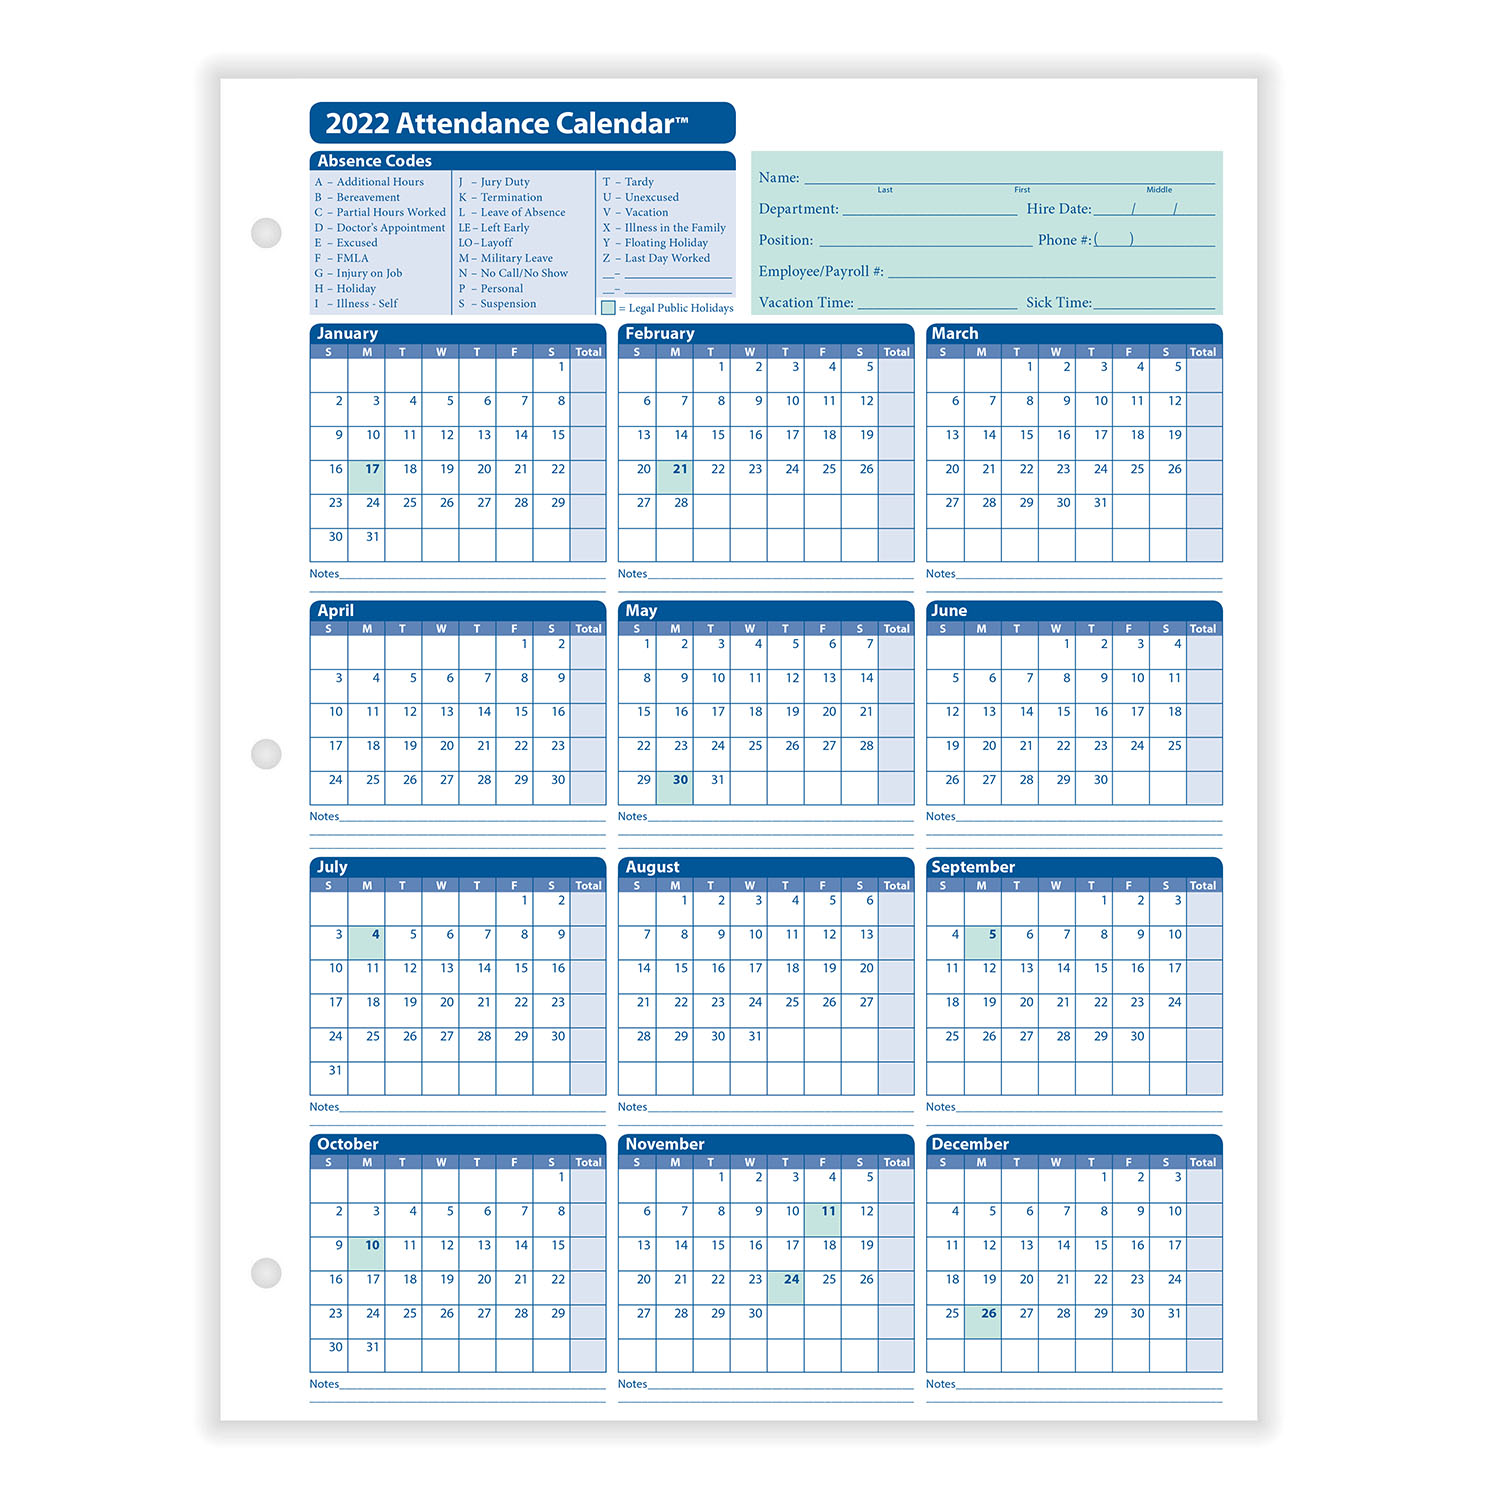 2022 Attendance Calendar Printable Free.Yearly Employee Attendance Calendar Yearly Calendar Hrdirect